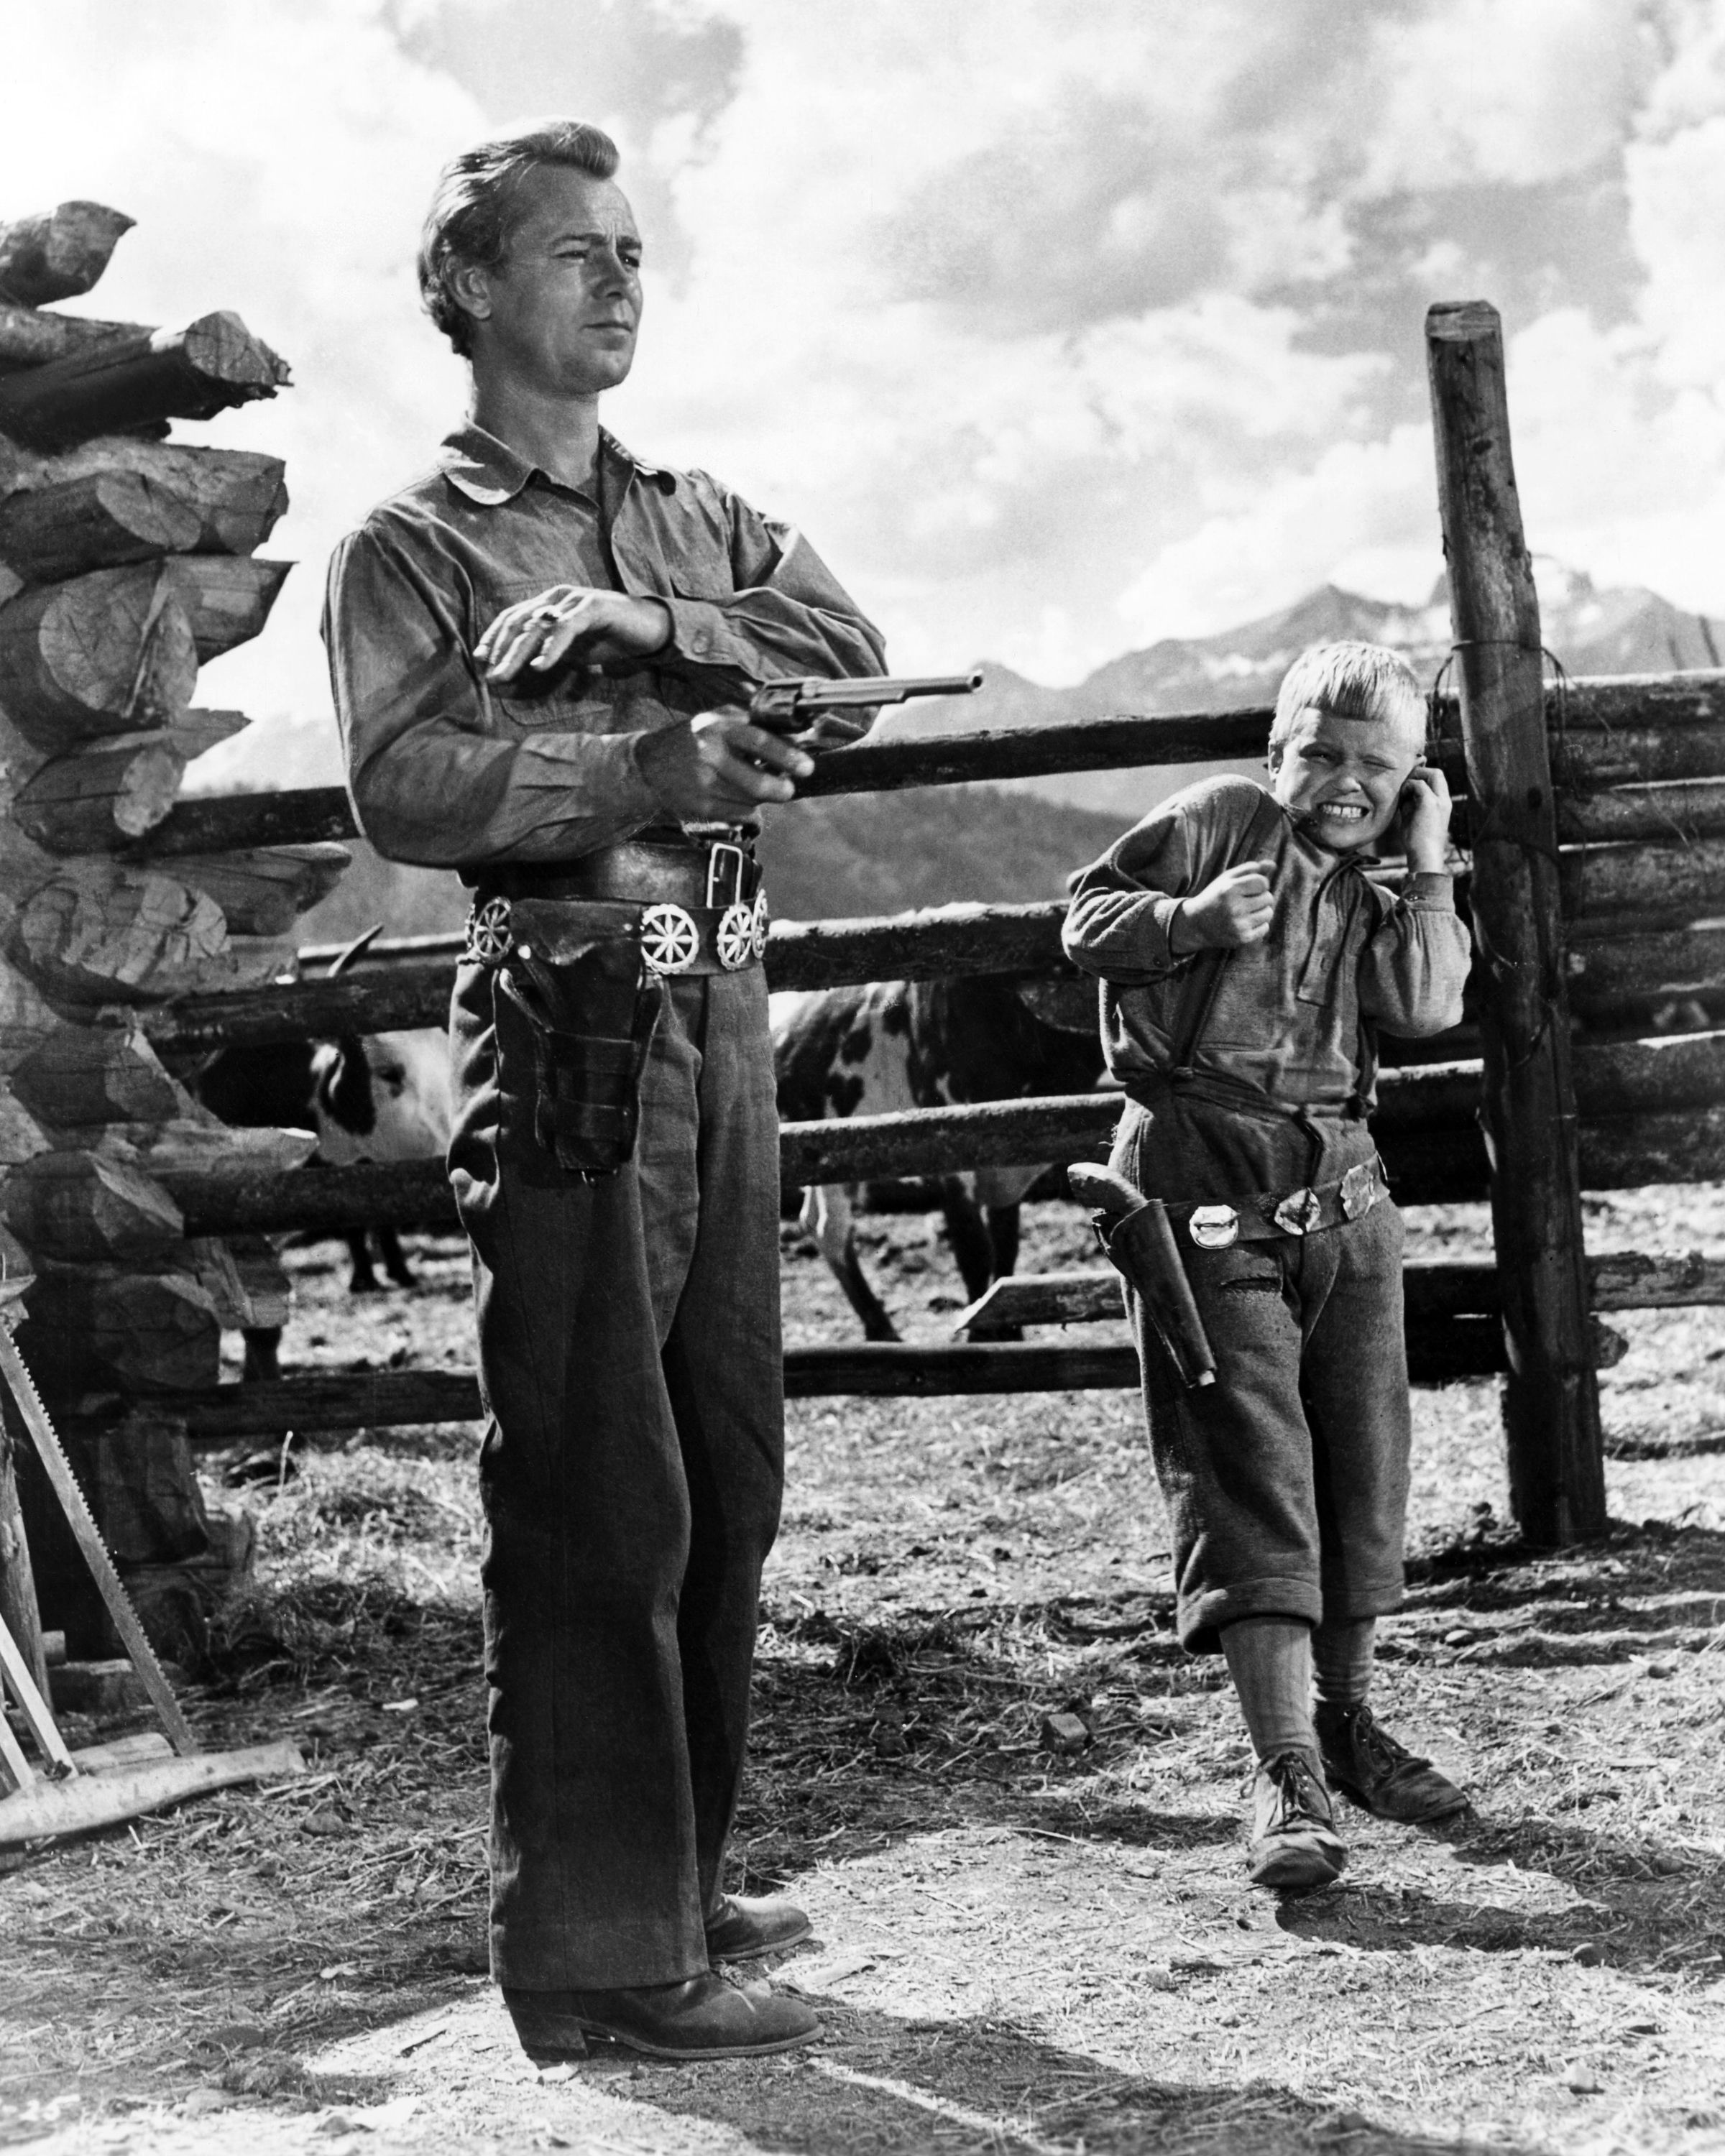 31 Best Classic Movies of All Time - List of Classic Black